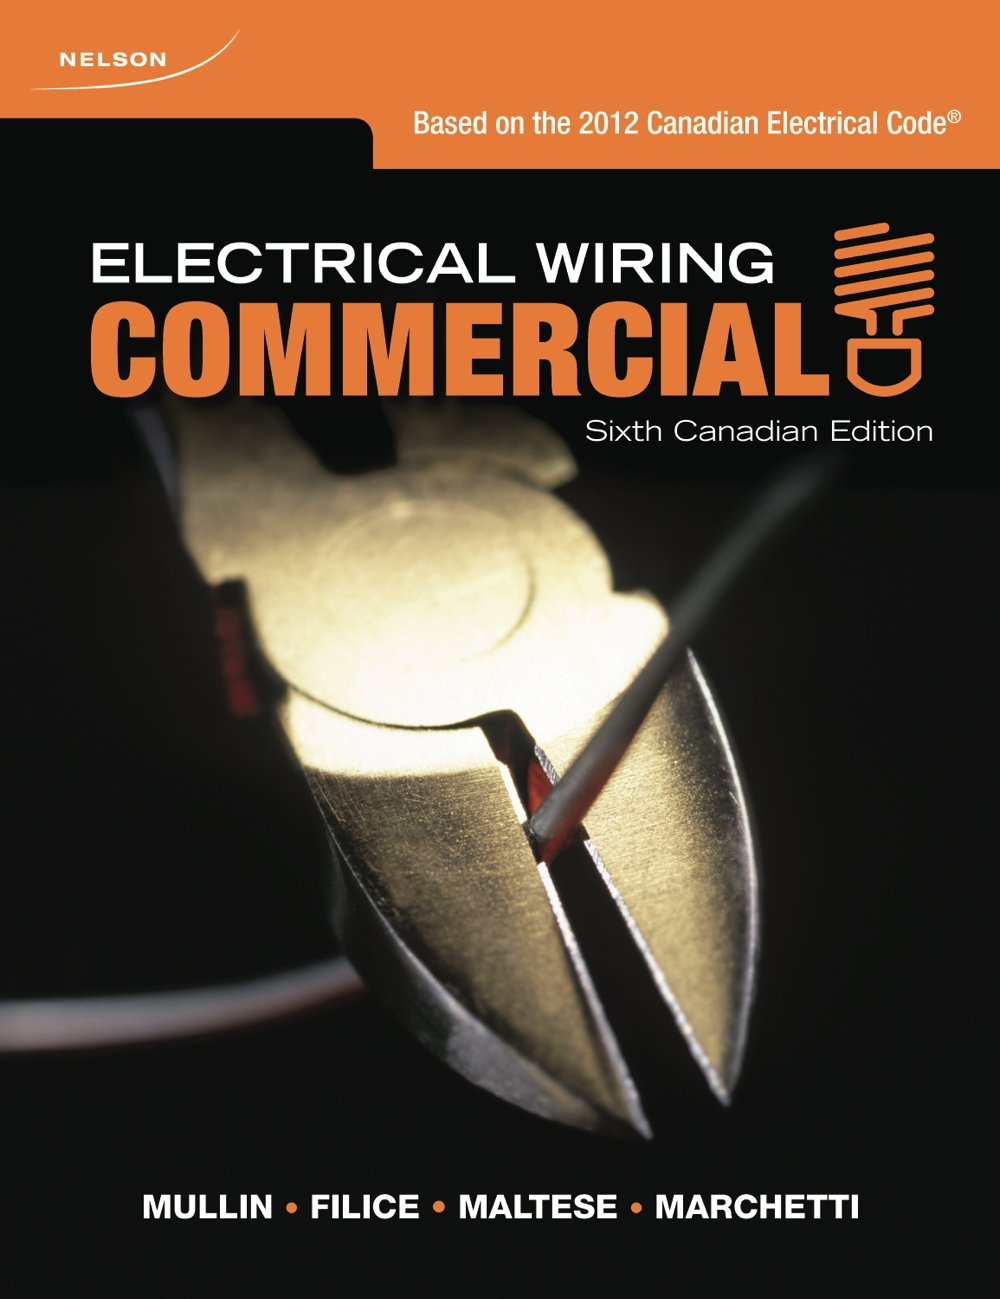 Electrical Wiring Commercial Ray Mullin Robert Filice Sam Residential Techniques Maltese Dennis Marchetti 9780176503833 Books